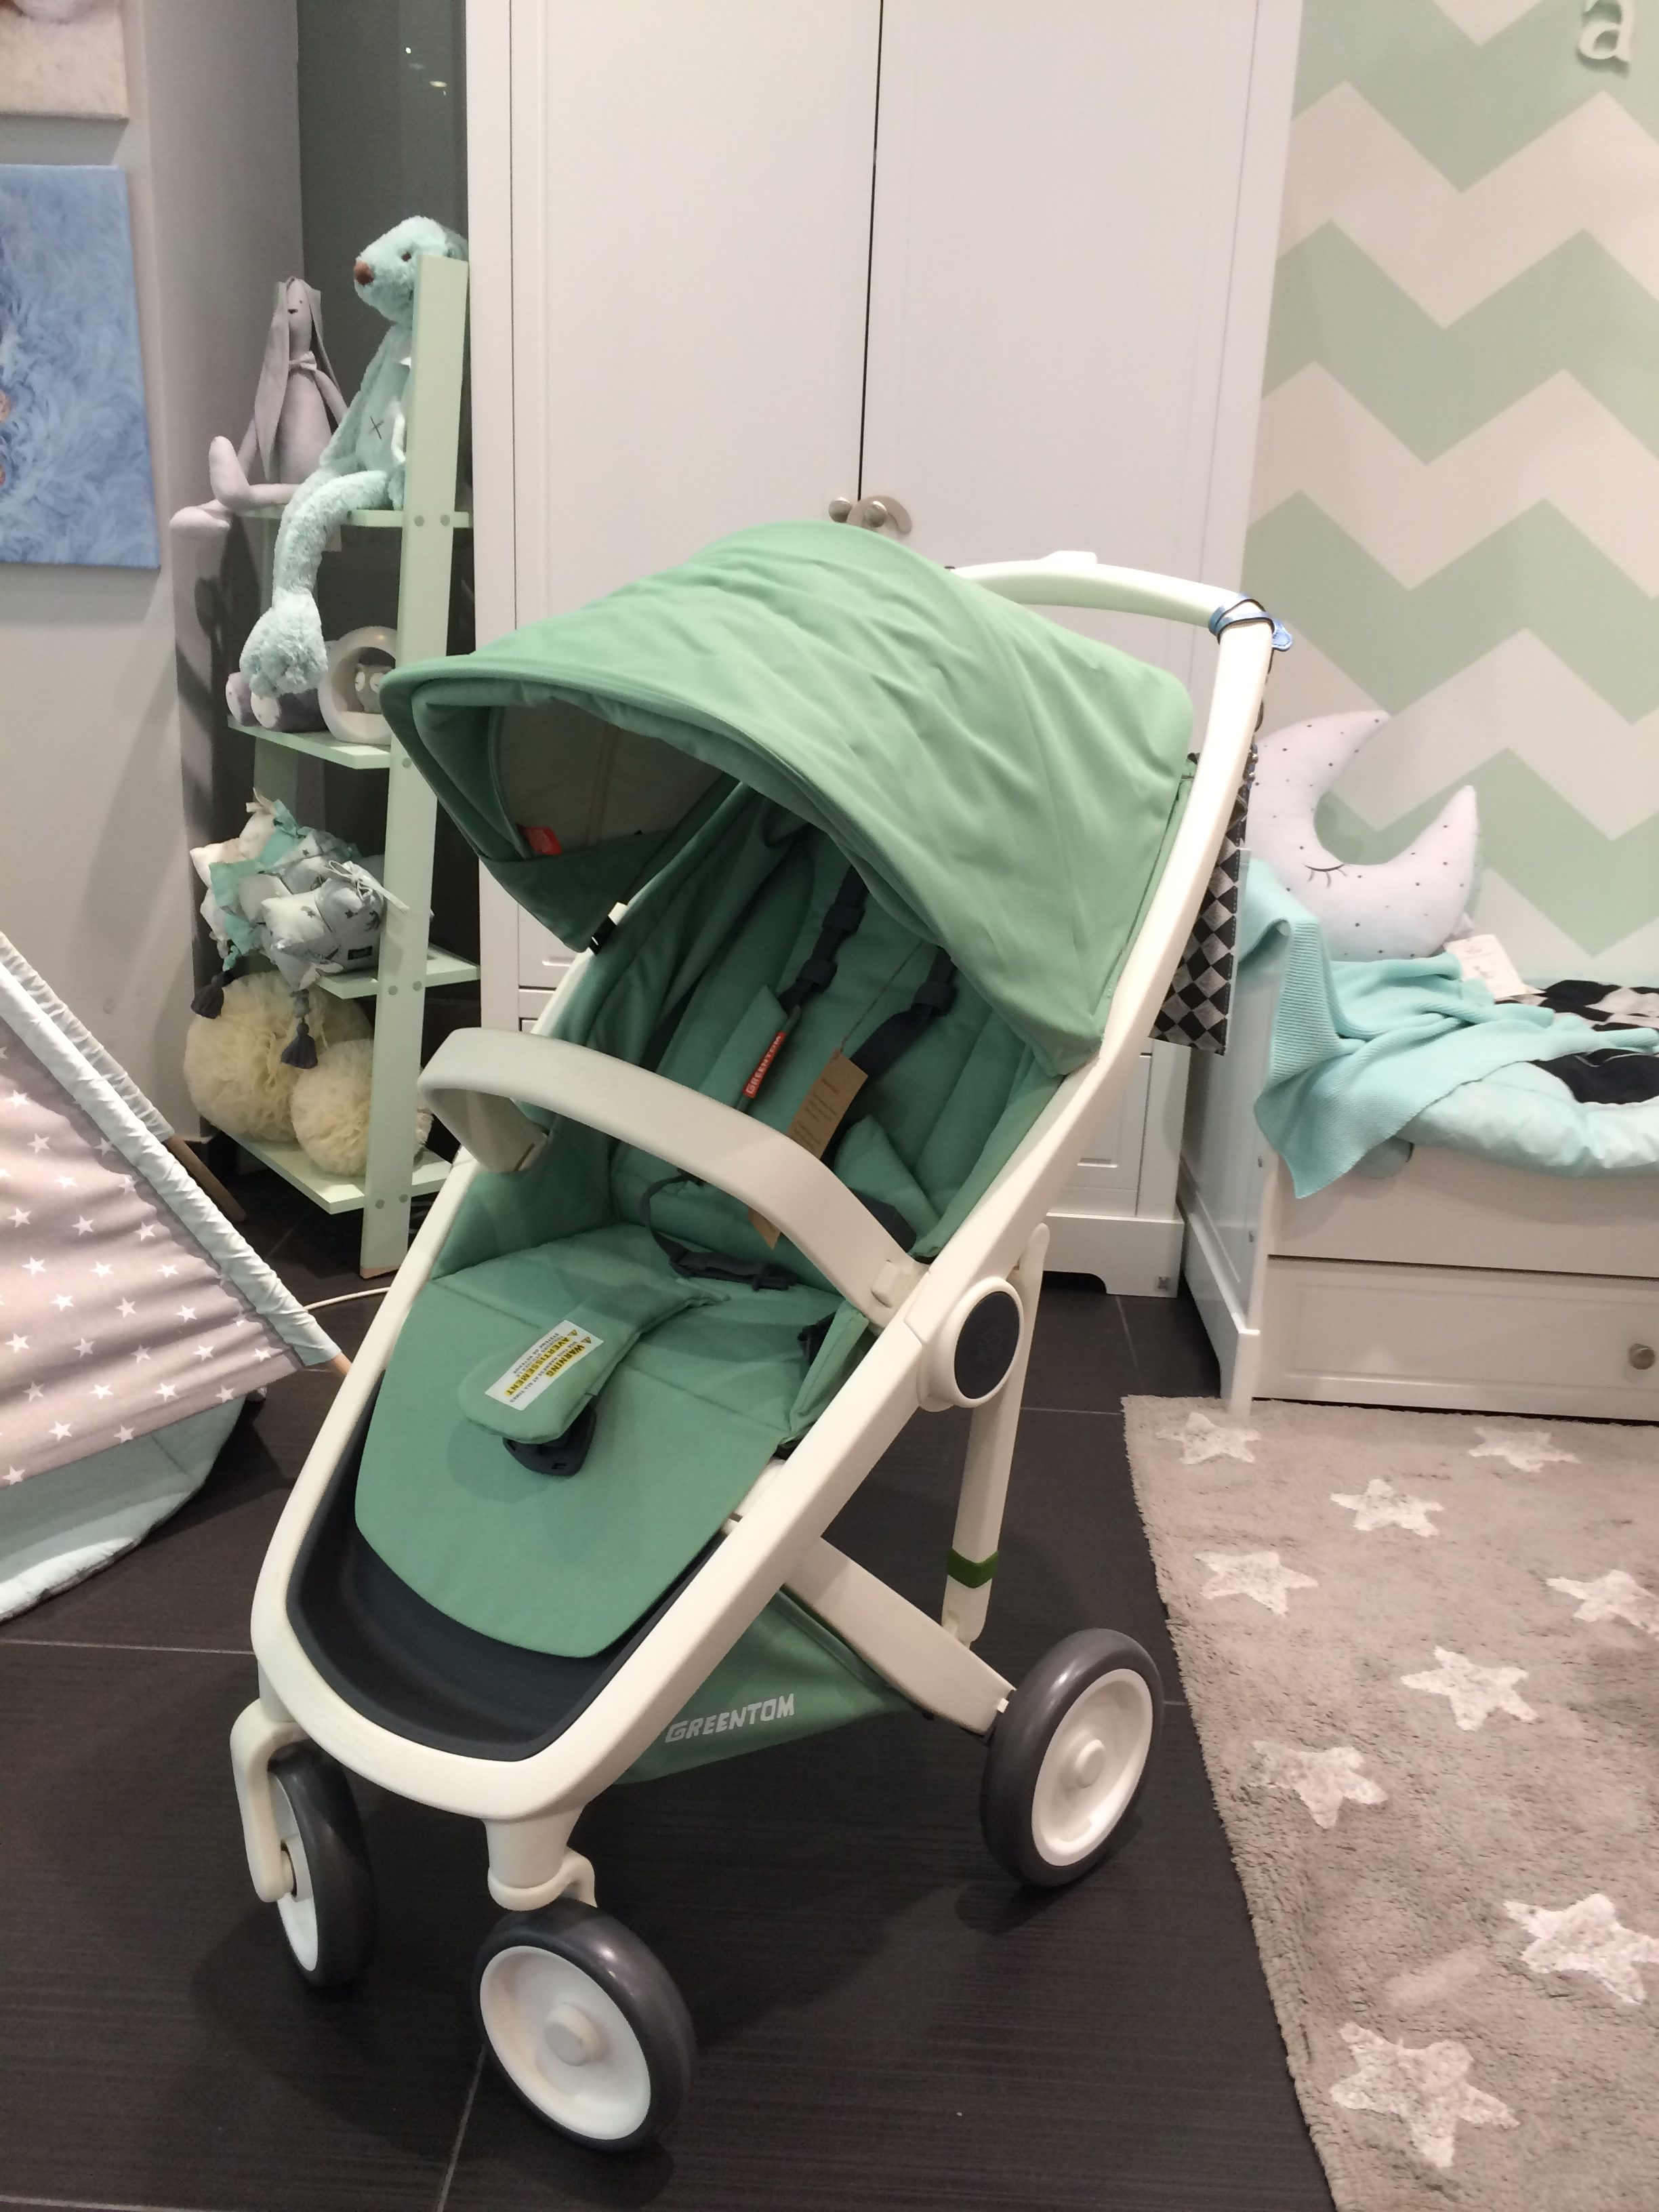 greentom upp classic reversible carrycot fotos videos vergleich lullaby. Black Bedroom Furniture Sets. Home Design Ideas